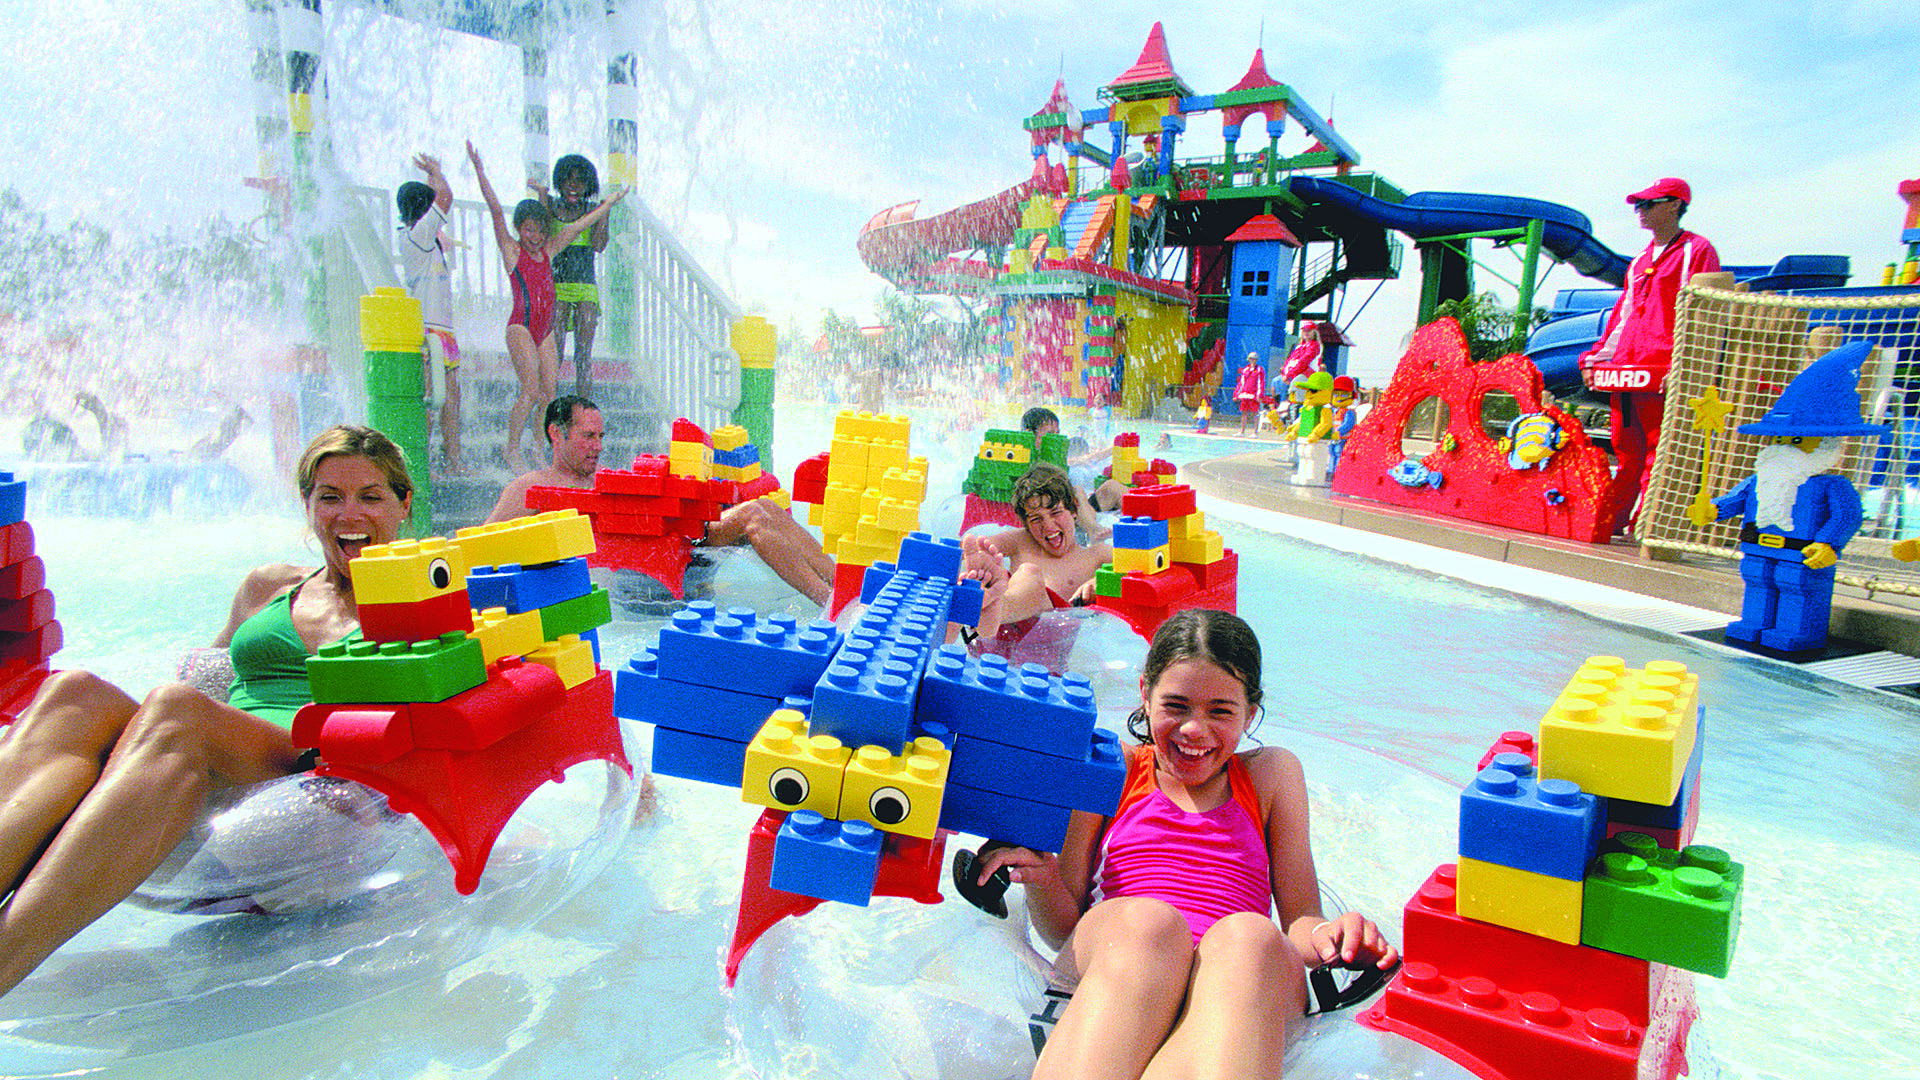 Build your own river raft at Legoland, Dubai Parks and Resorts